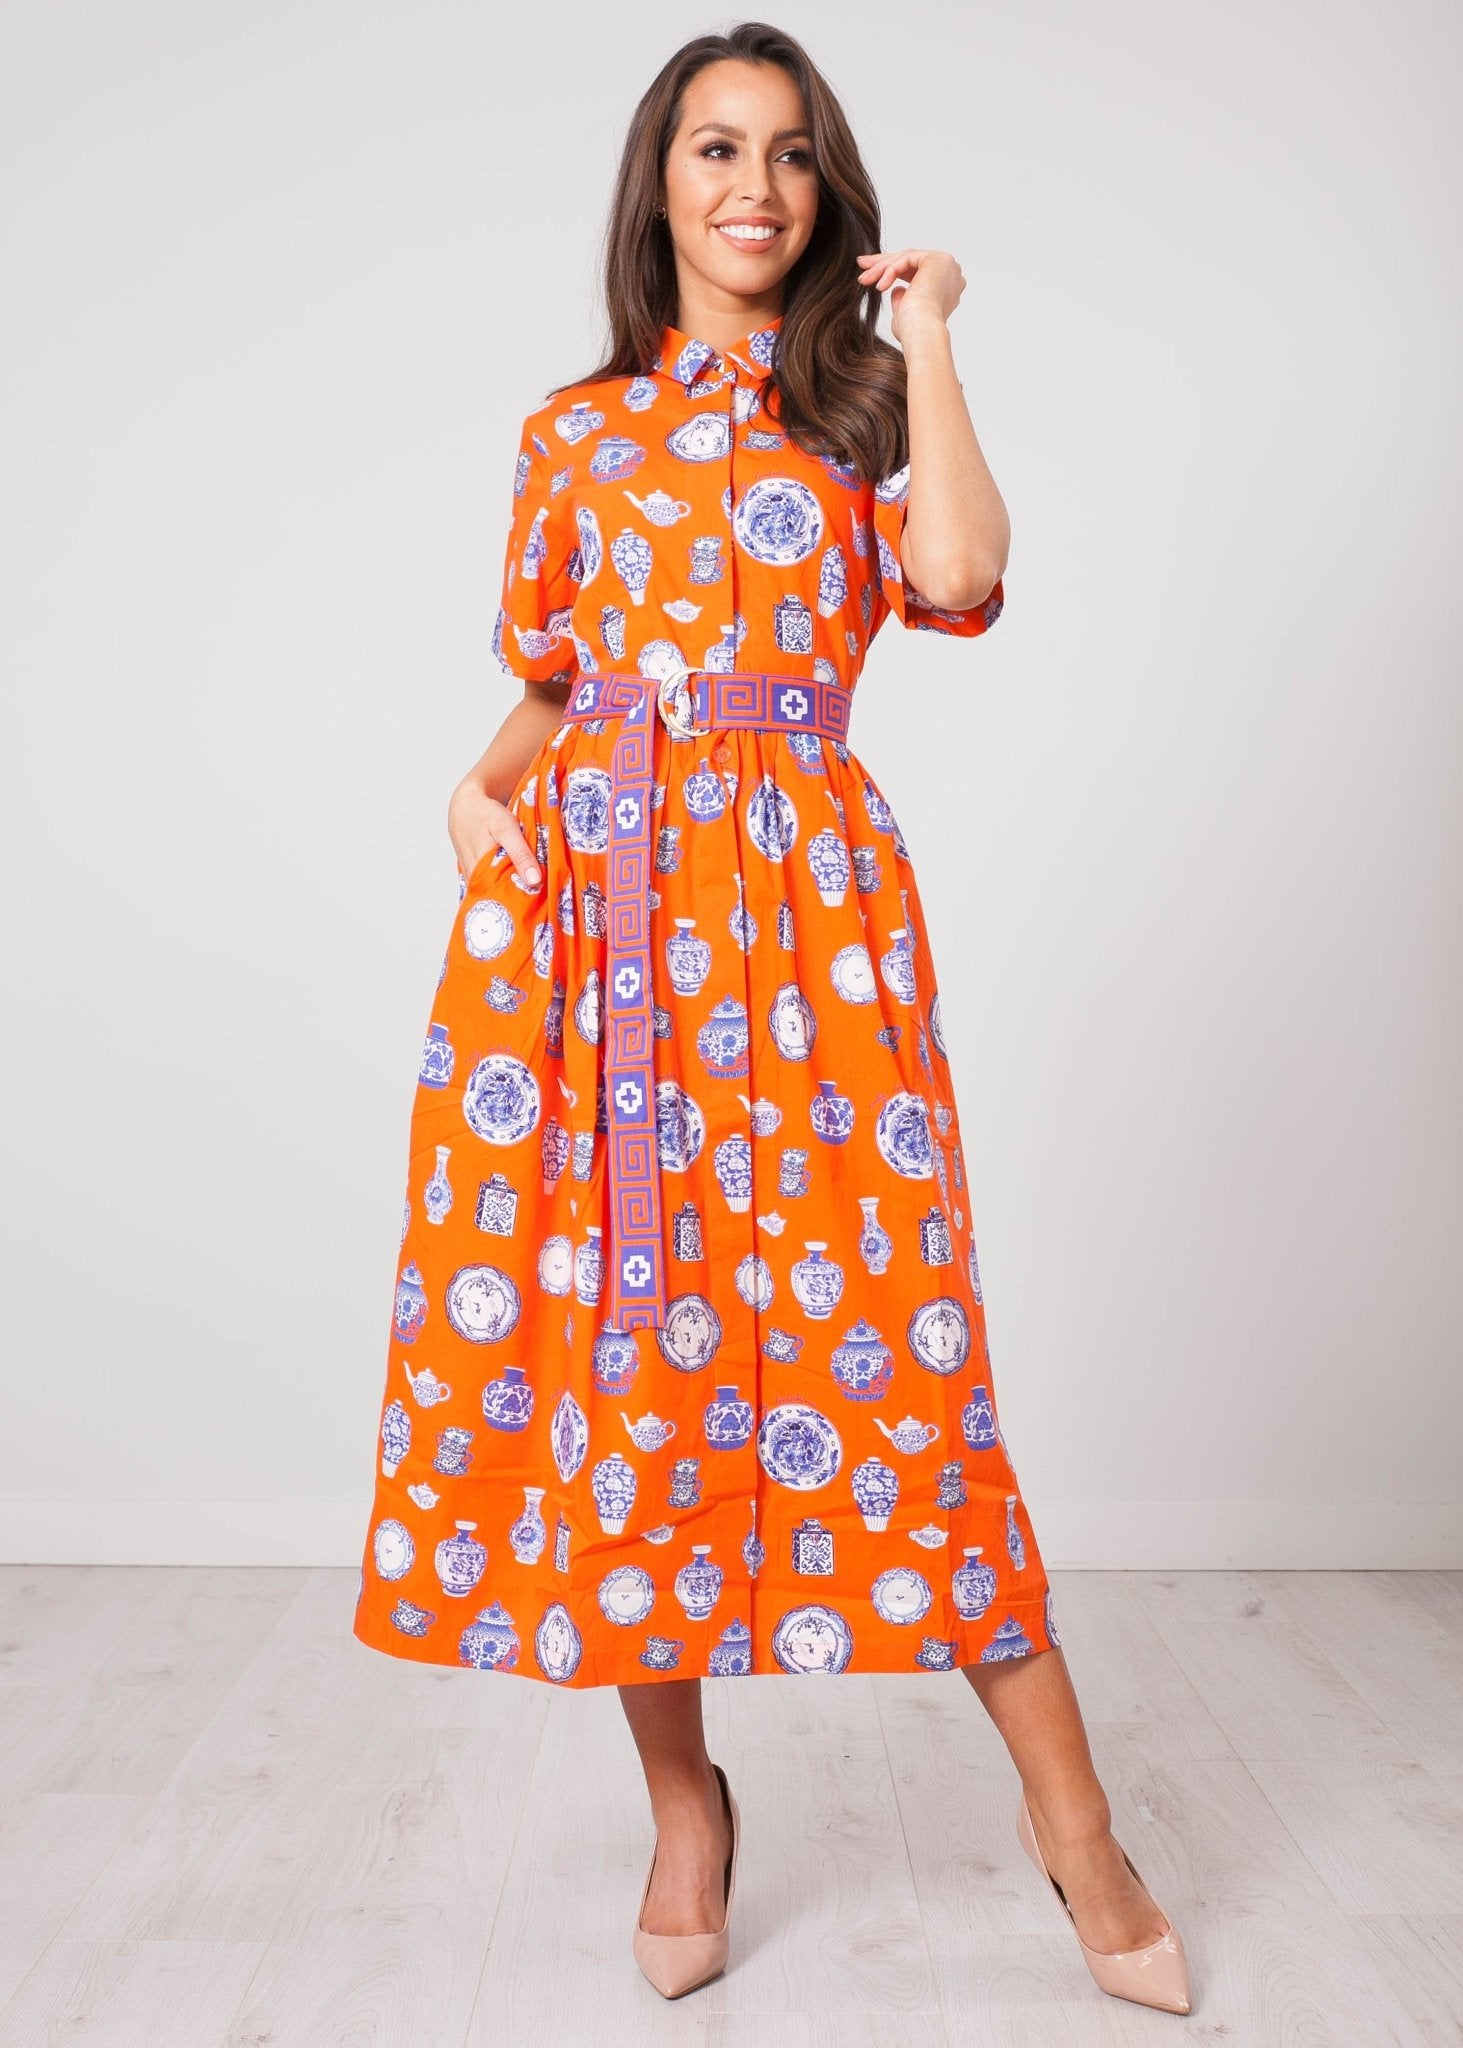 Emily Orange Printed Dress - The Walk in Wardrobe